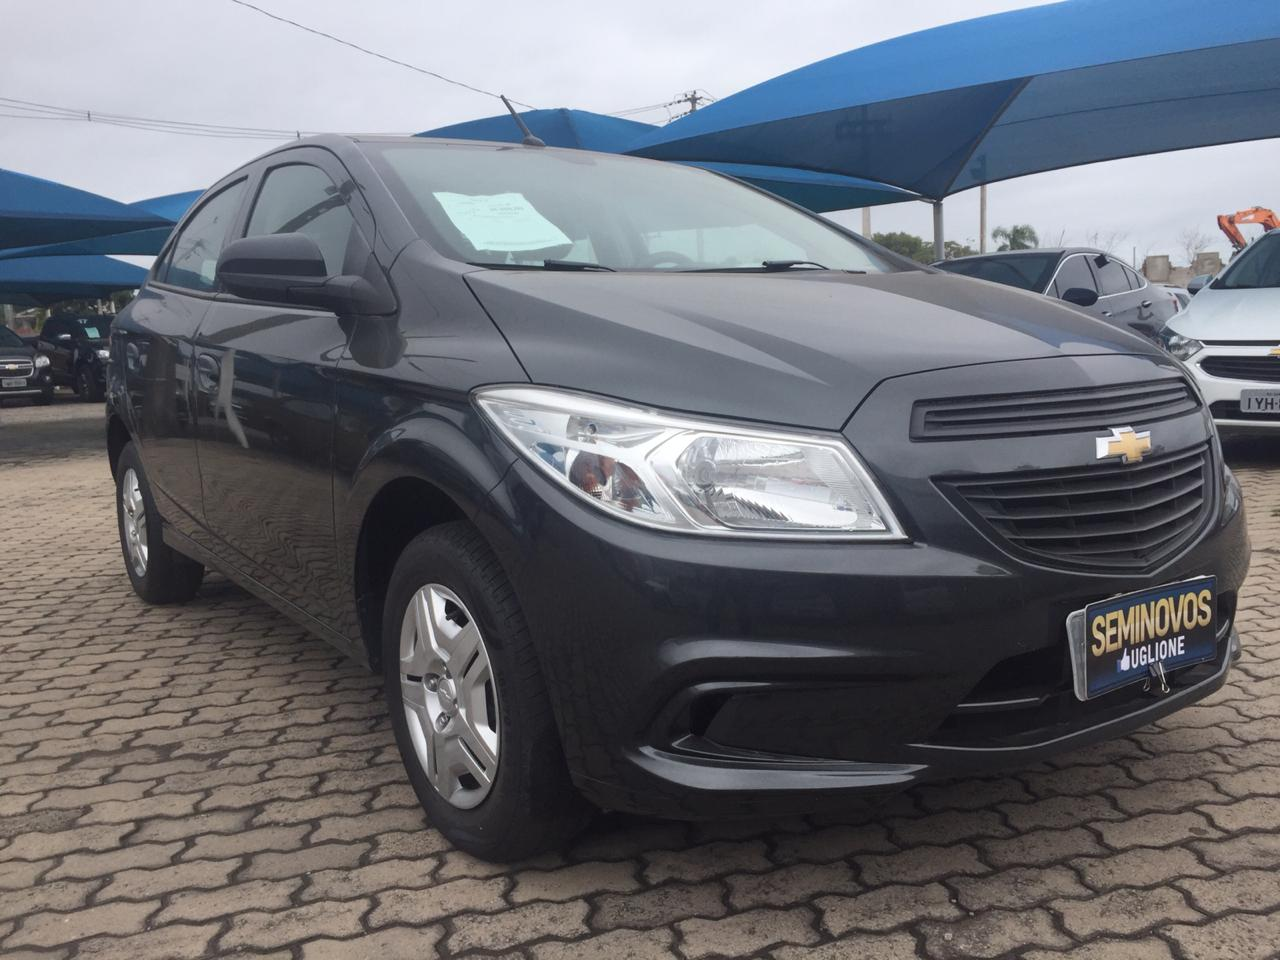 CHEVROLET ONIX HATCH LT 1.0 2016